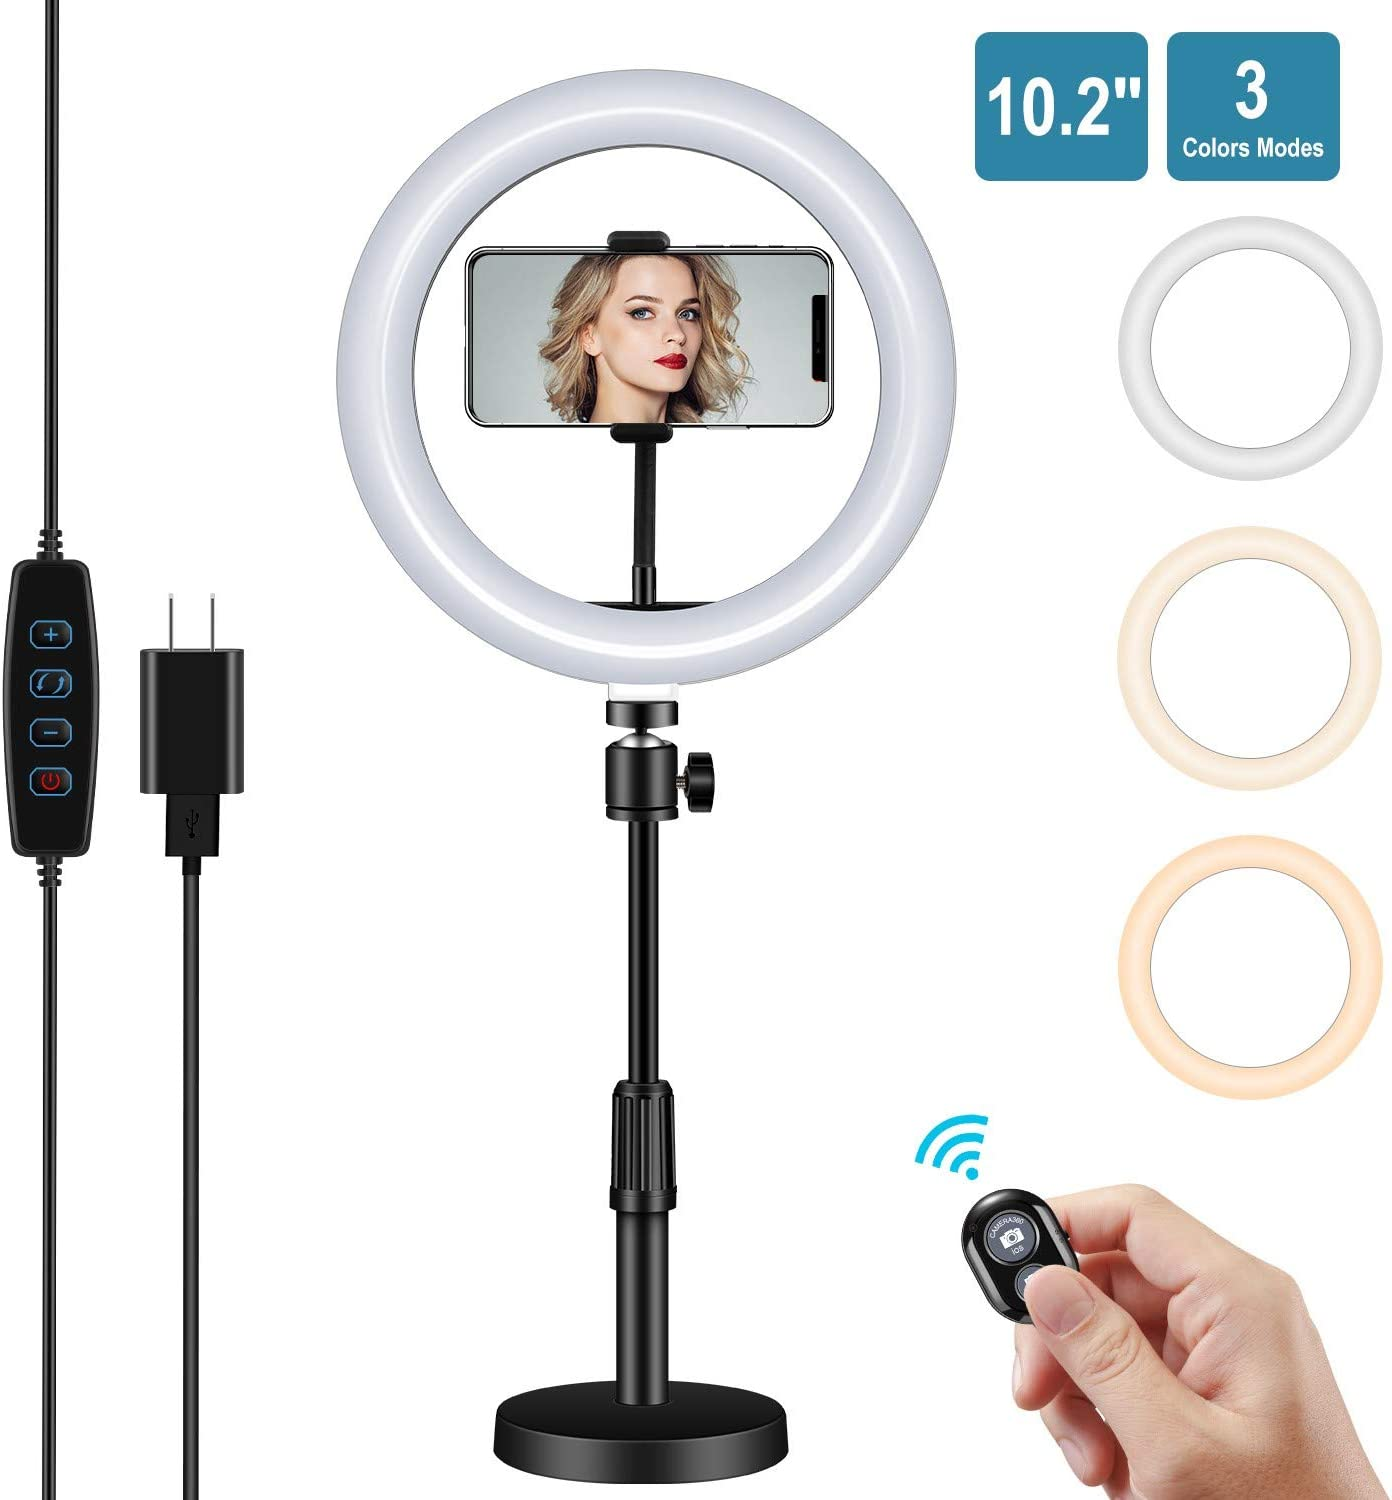 "10.2"" Desktop LED Ring Light, NovoLido 2-1 Selfie Ring Light & LED Desk Lamp with Phone Holder & Bluetooth Remote & Adapter, 3 Color Modes & 10 Brightness, 360° Rotating, Adjustable Bracket, 5W"